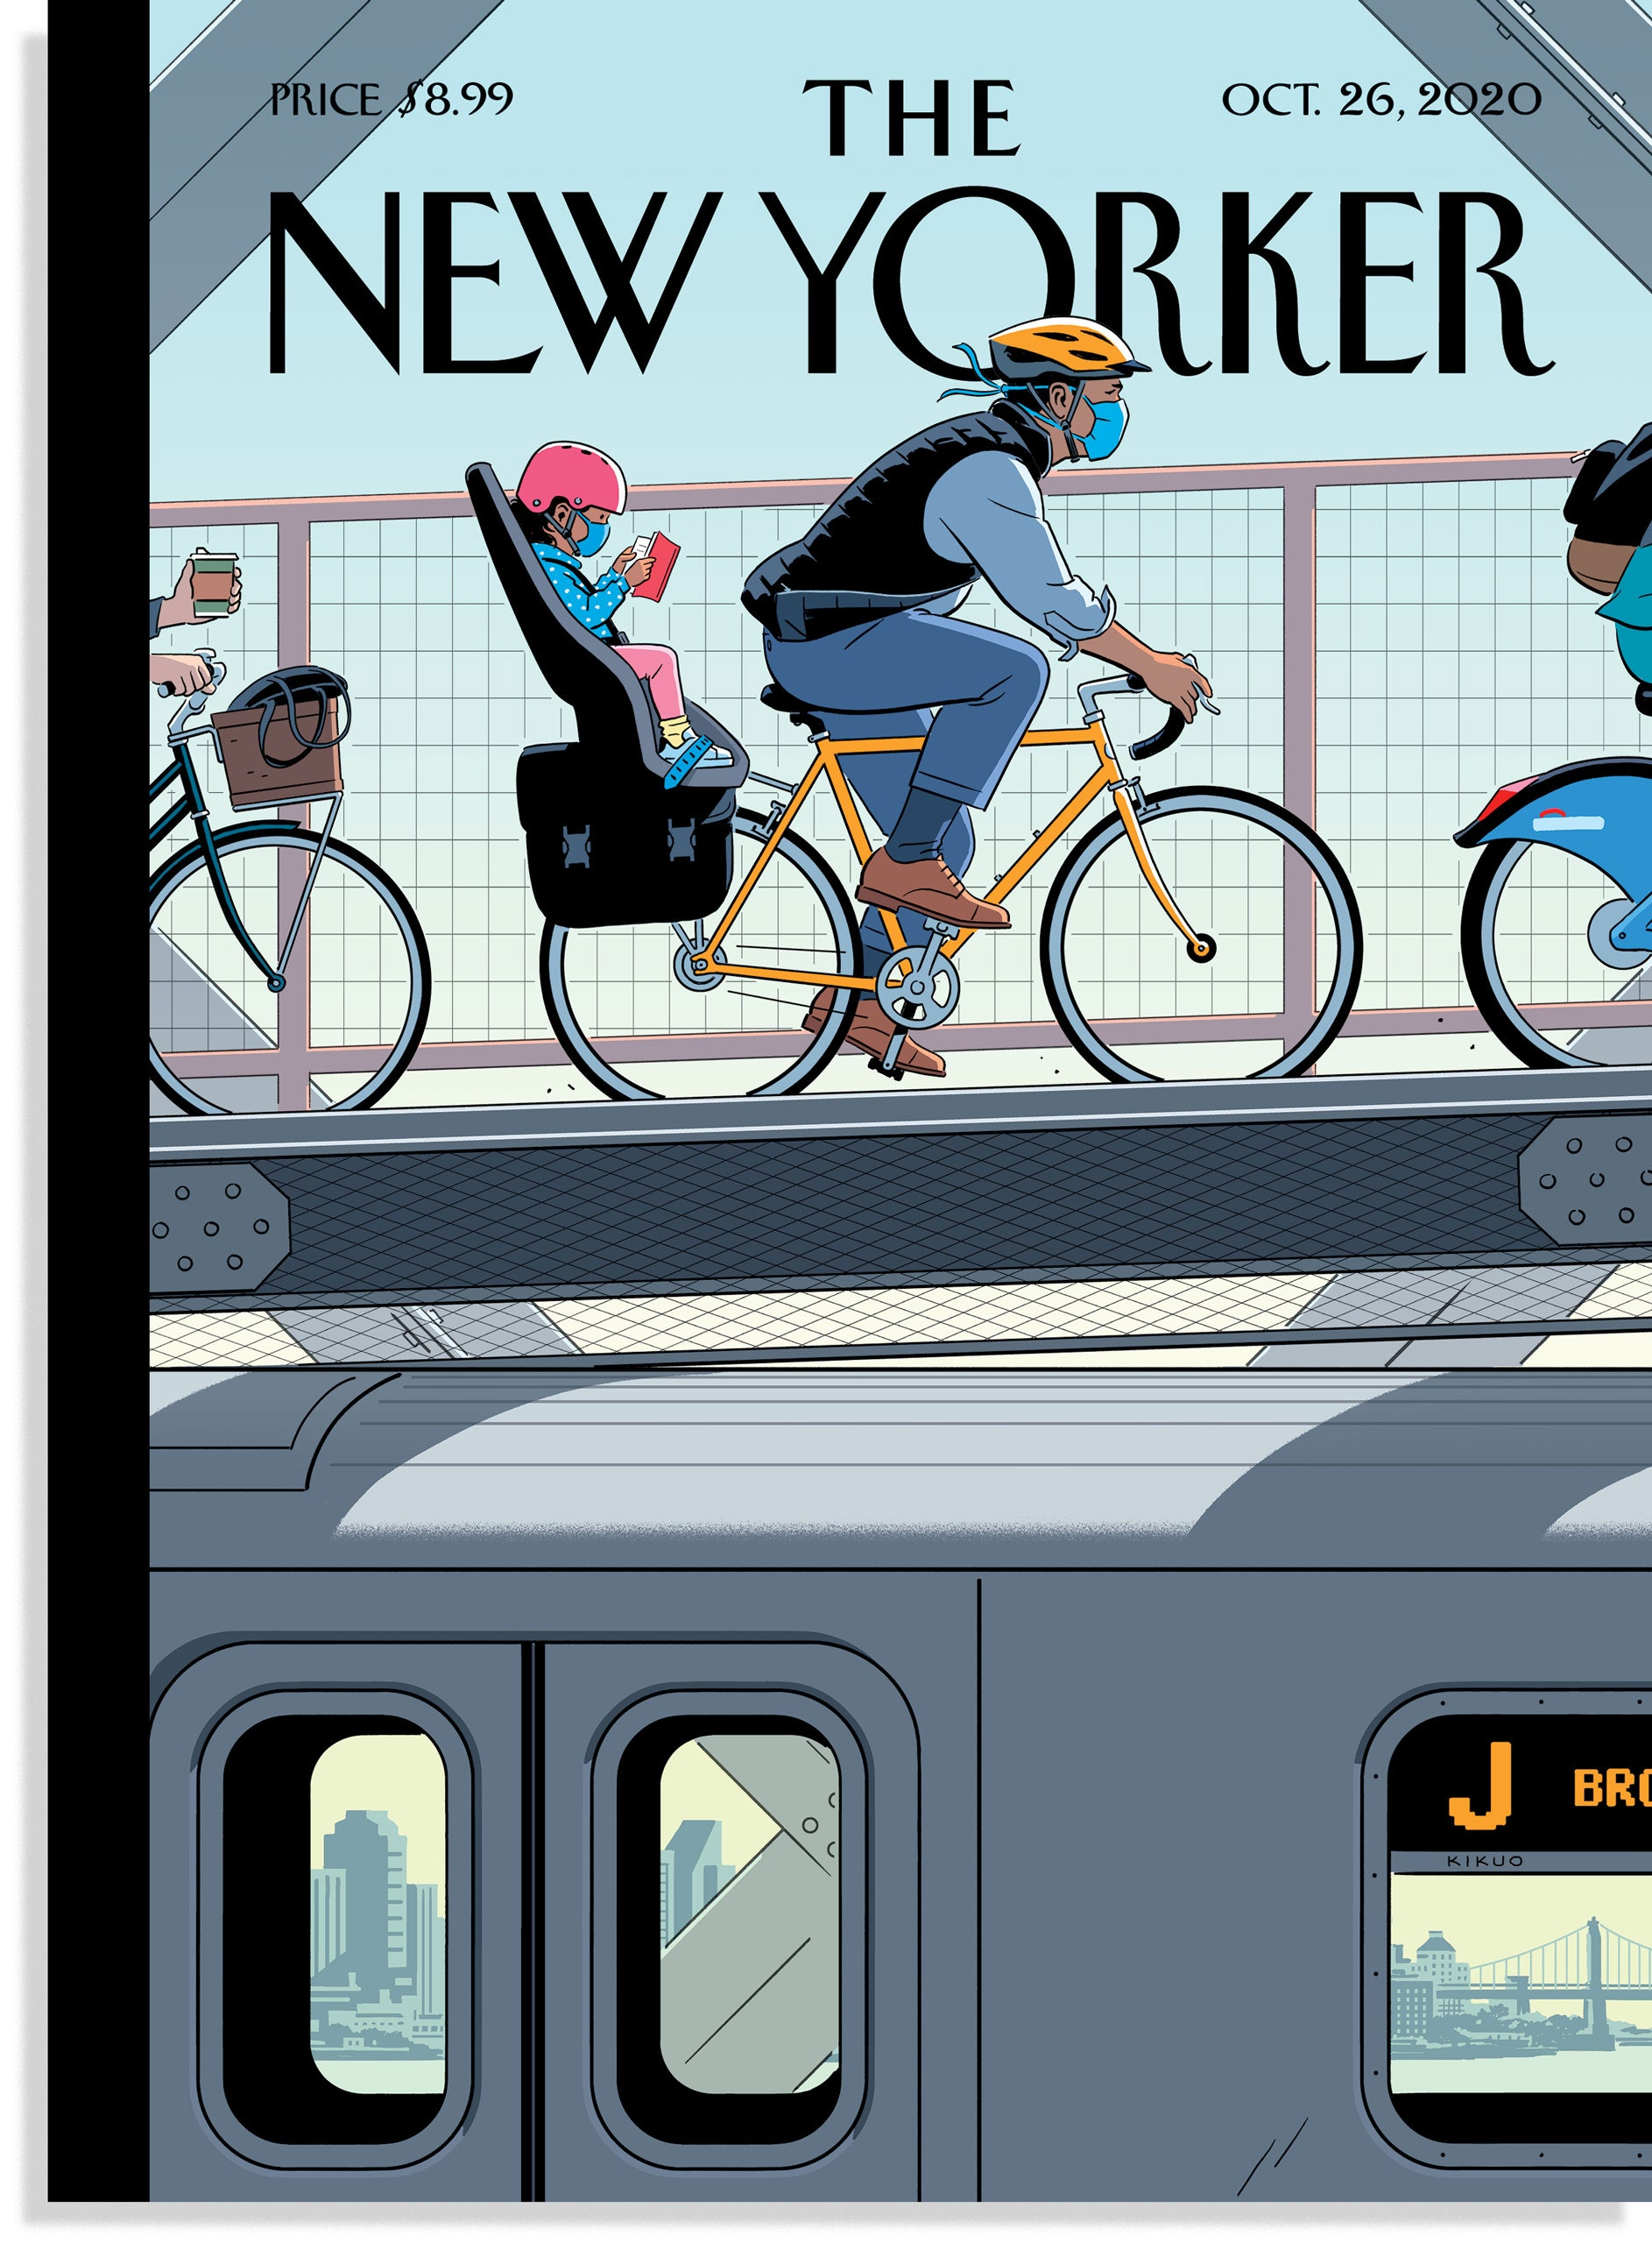 The New Yorker Magazine In The World